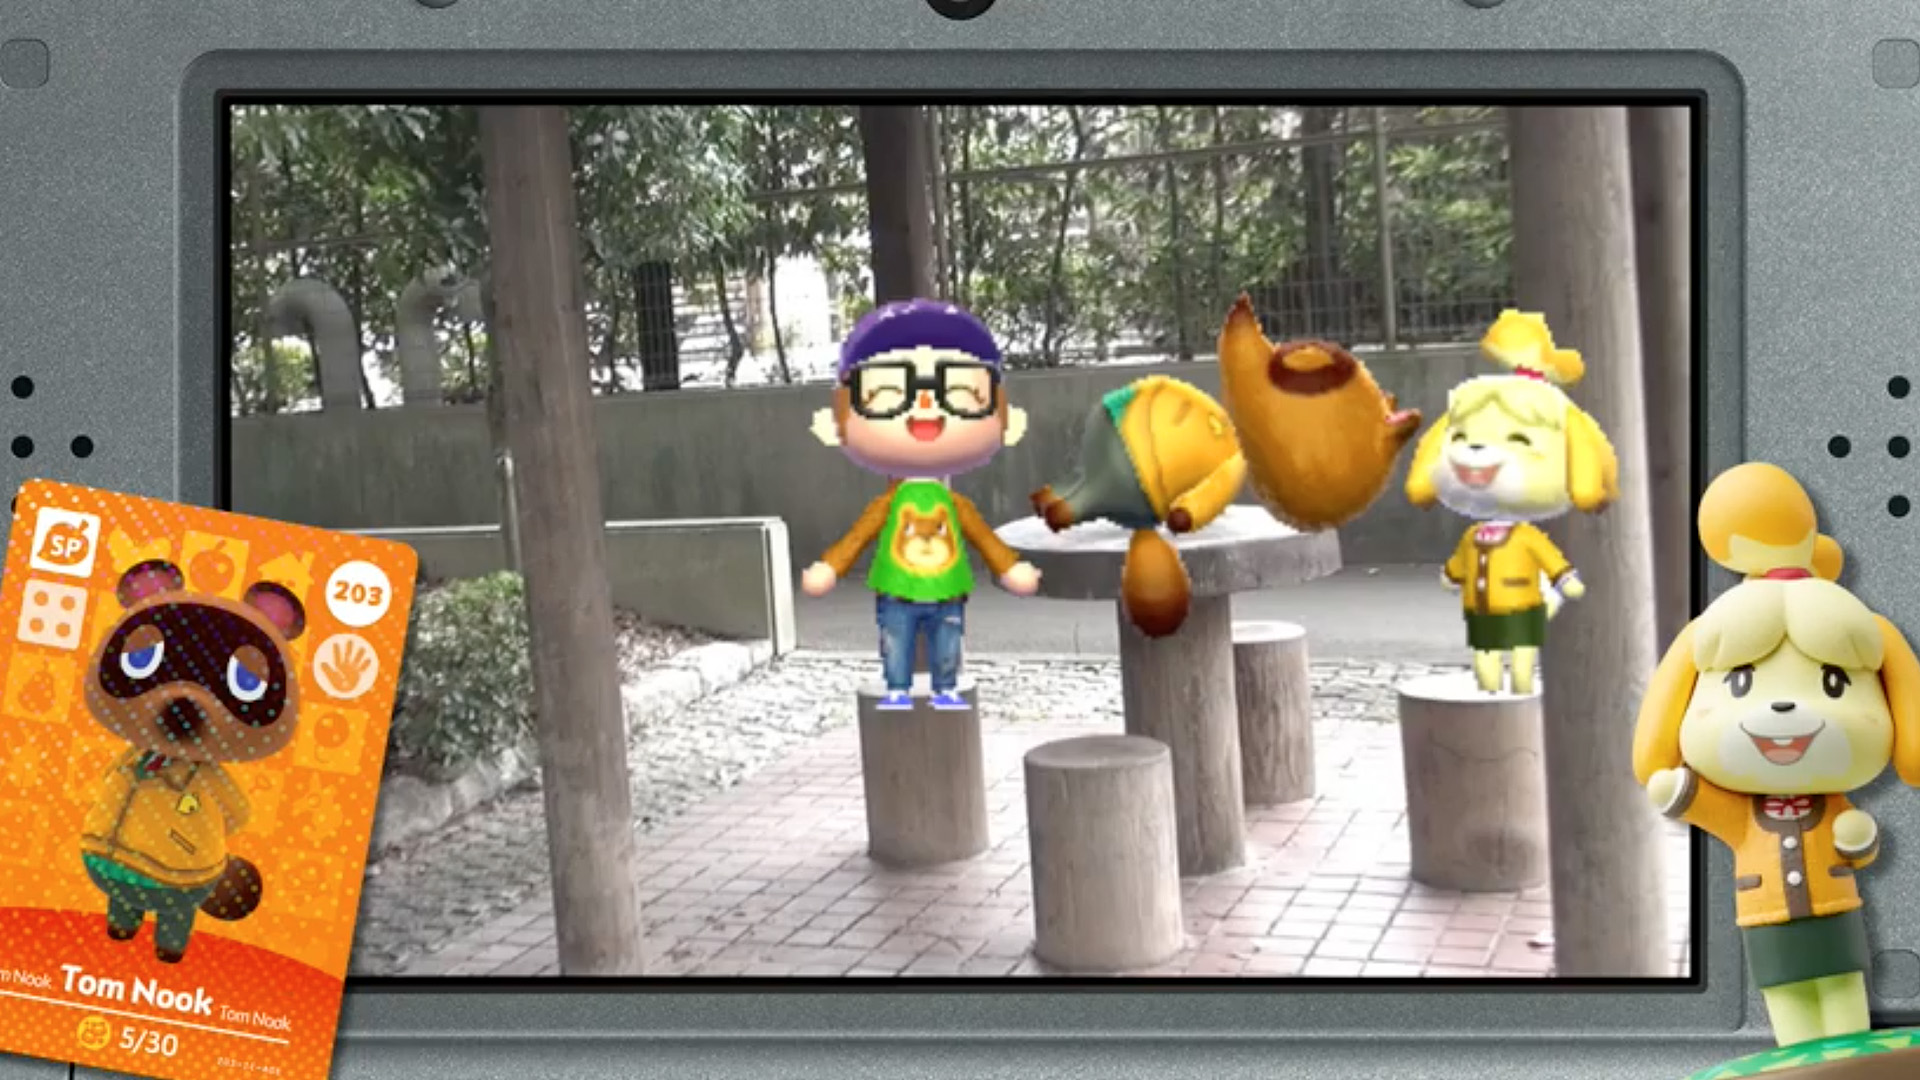 Kitchen Island Acnl welcome amiibo trailer offers tour of all the new features in